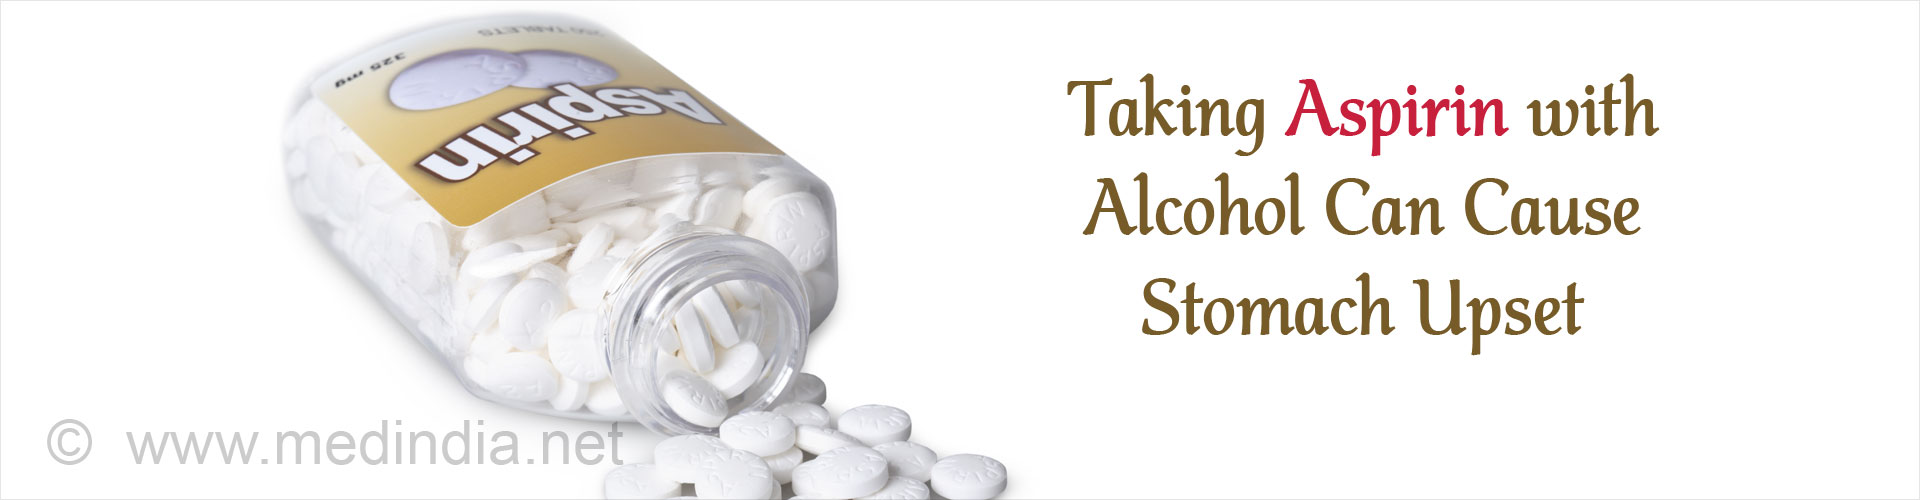 Drug Interaction with Alcohol